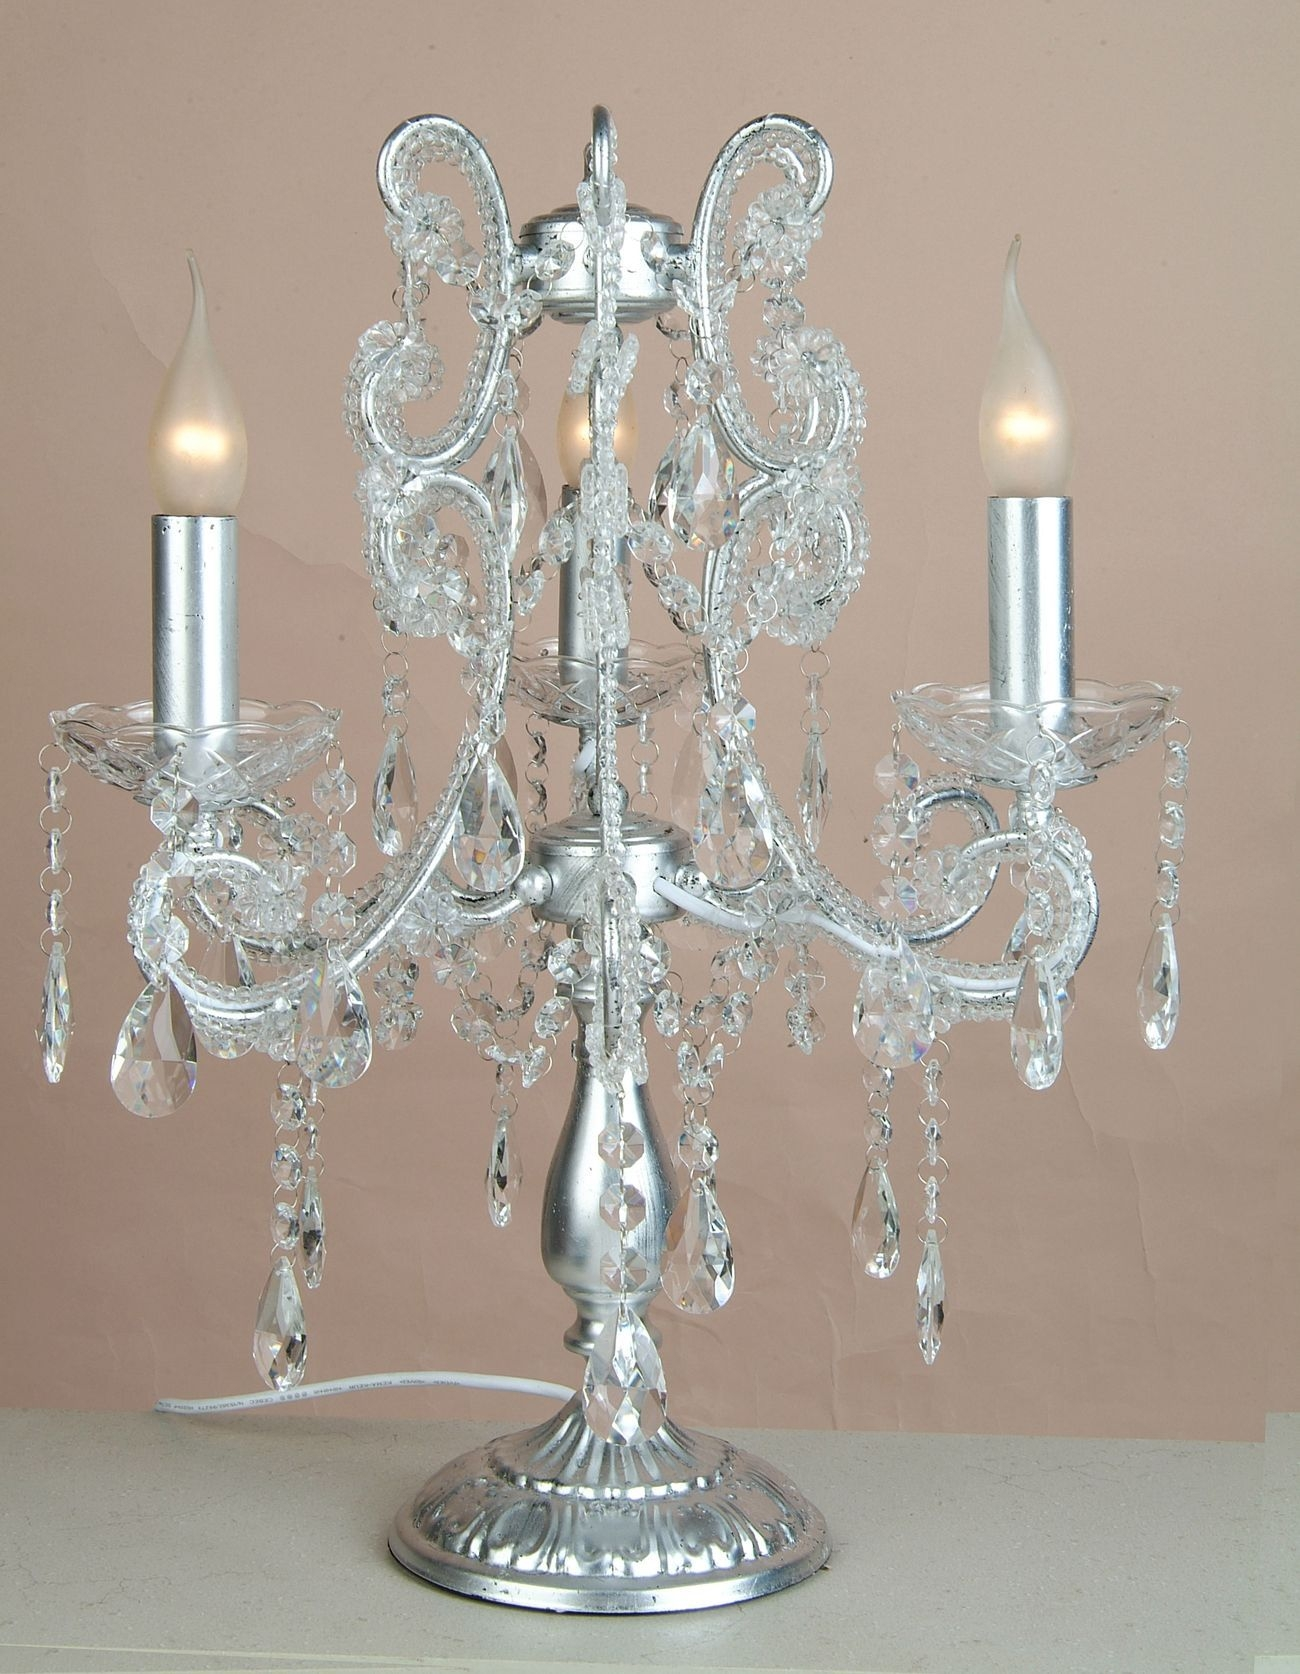 25 Inspirations Small Crystal Chandelier Table Lamps